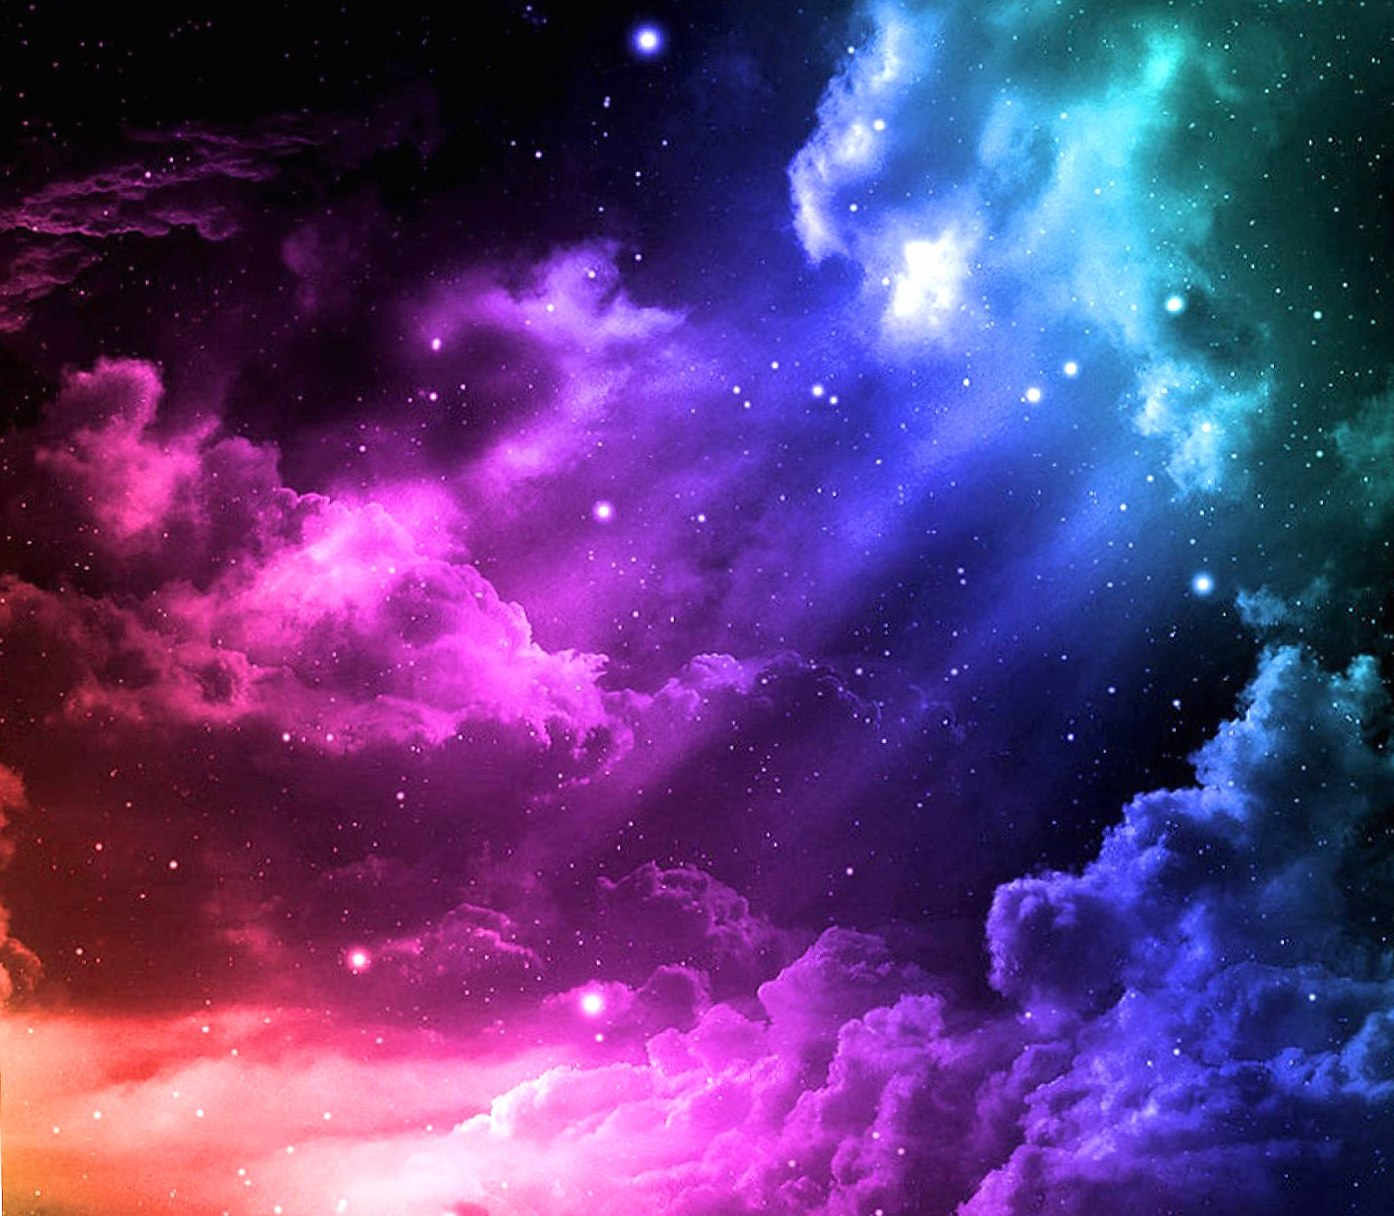 Colorful abstract wallpapers HD quality